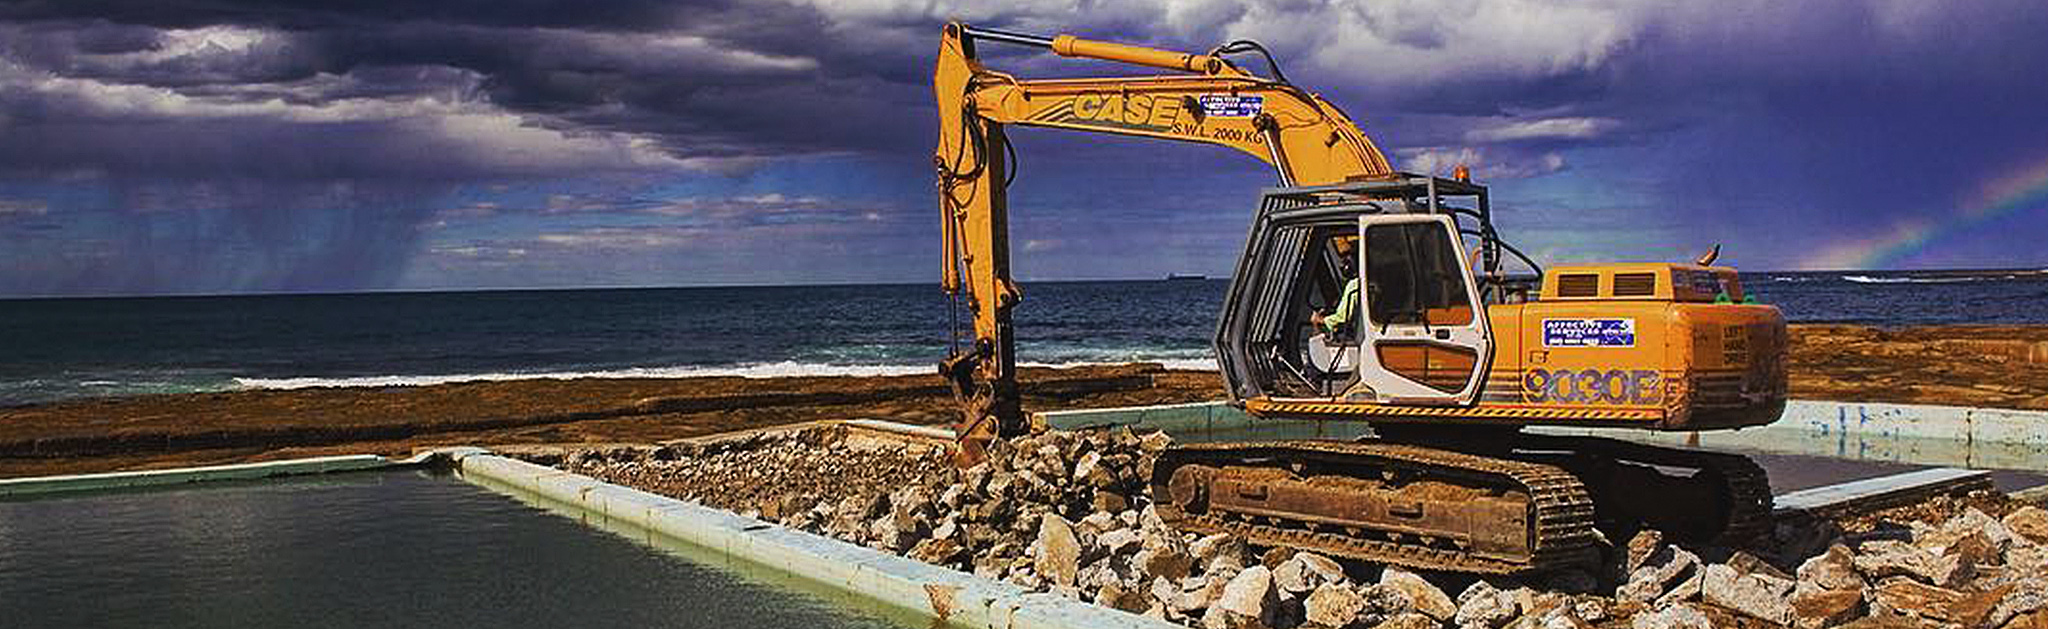 Civil works at a rock or tide pool in NSW